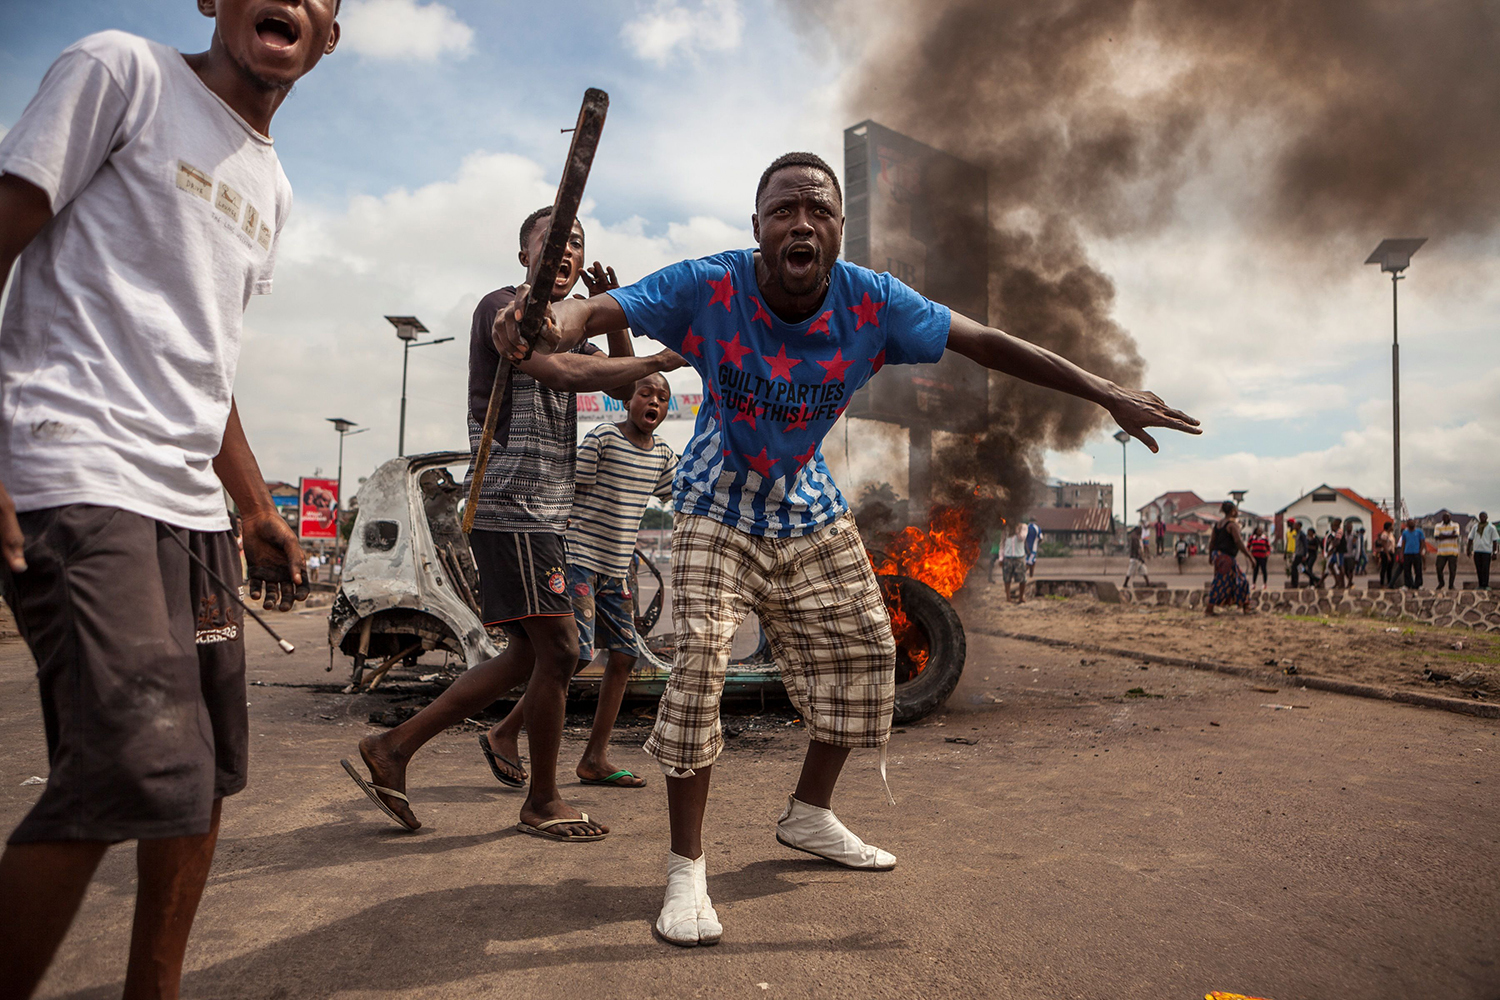 TOPSHOT - Demonstrators gather in front of a burning car during an opposition rally in Kinshasa on September 19, 2016. Police fired tear gas at scores of opposition supporters rallying in Kinshasa to demand that DR Congo's long-serving President Joseph Kabila step down this year, AFP journalists said. Kabila, who has ruled DR Congo since 2001, is banned under the constitution from running again -- but he has given no sign of intending to give up his job in December. / AFP PHOTO / EDUARDO SOTERAS / TT / kod 444